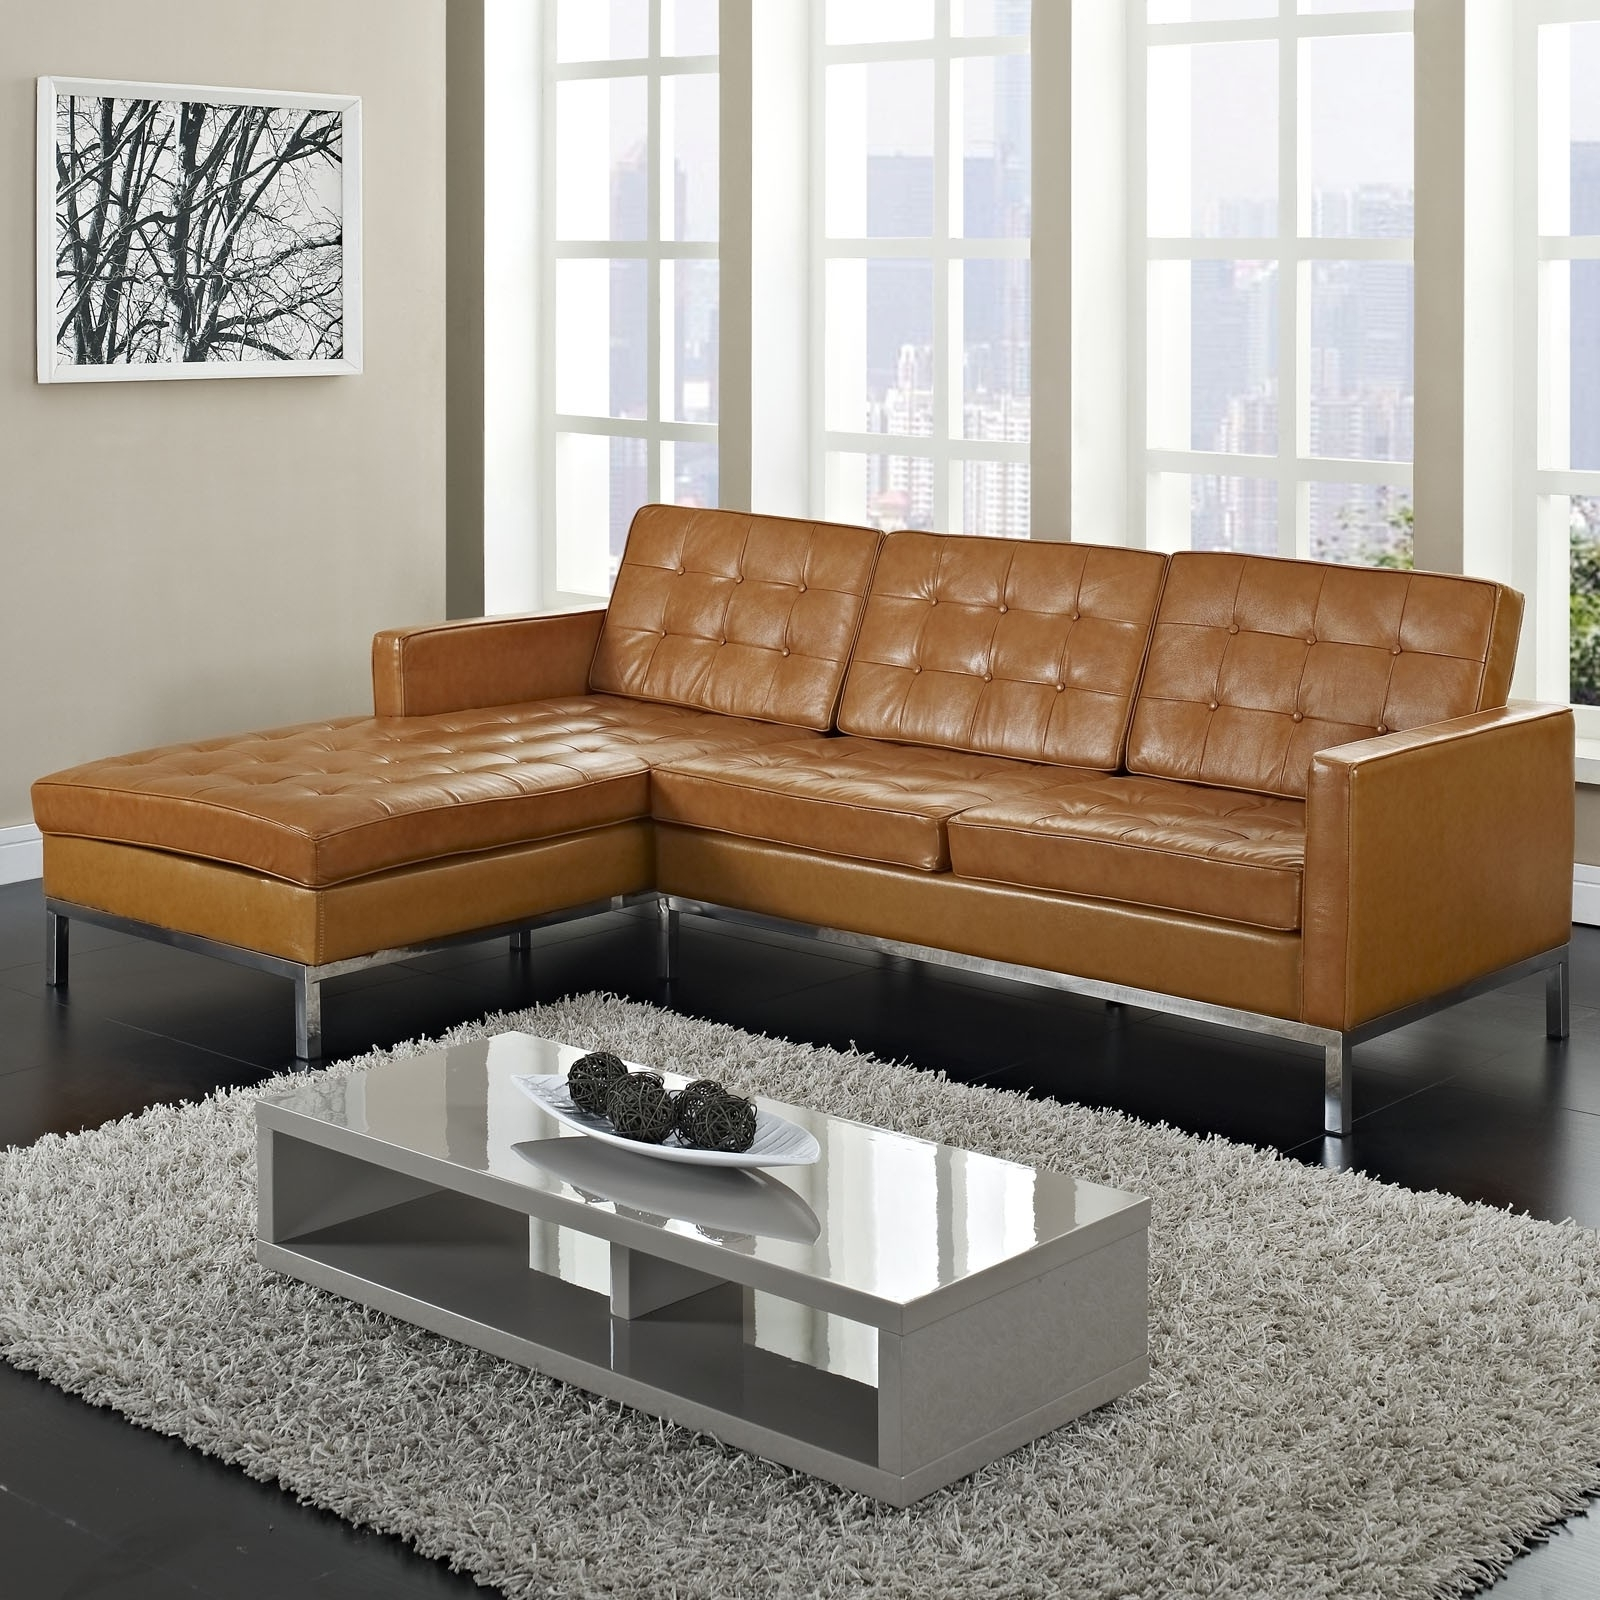 Light Tan Leather Sofa – Home Design Ideas And Pictures Inside Most Recent Light Tan Leather Sofas (View 8 of 20)